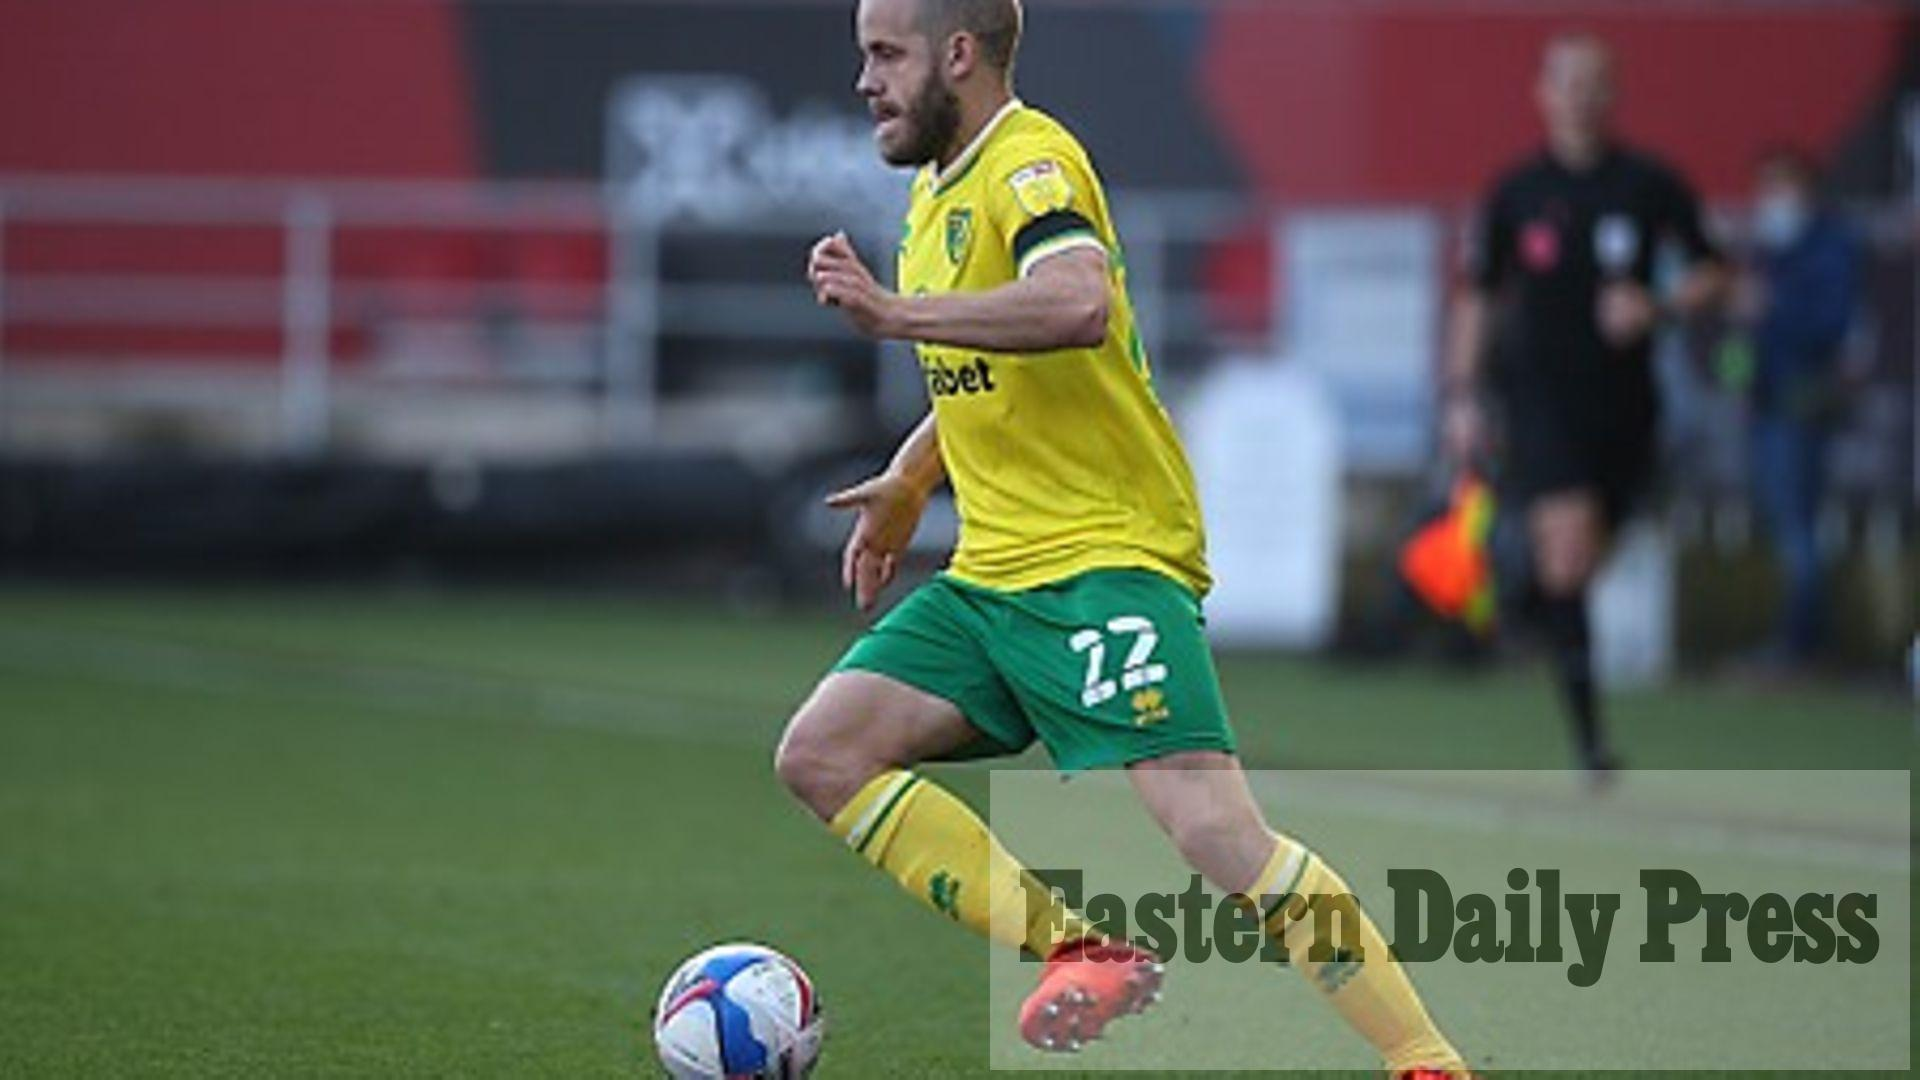 norwich city vs sheffield wednesday - photo #8